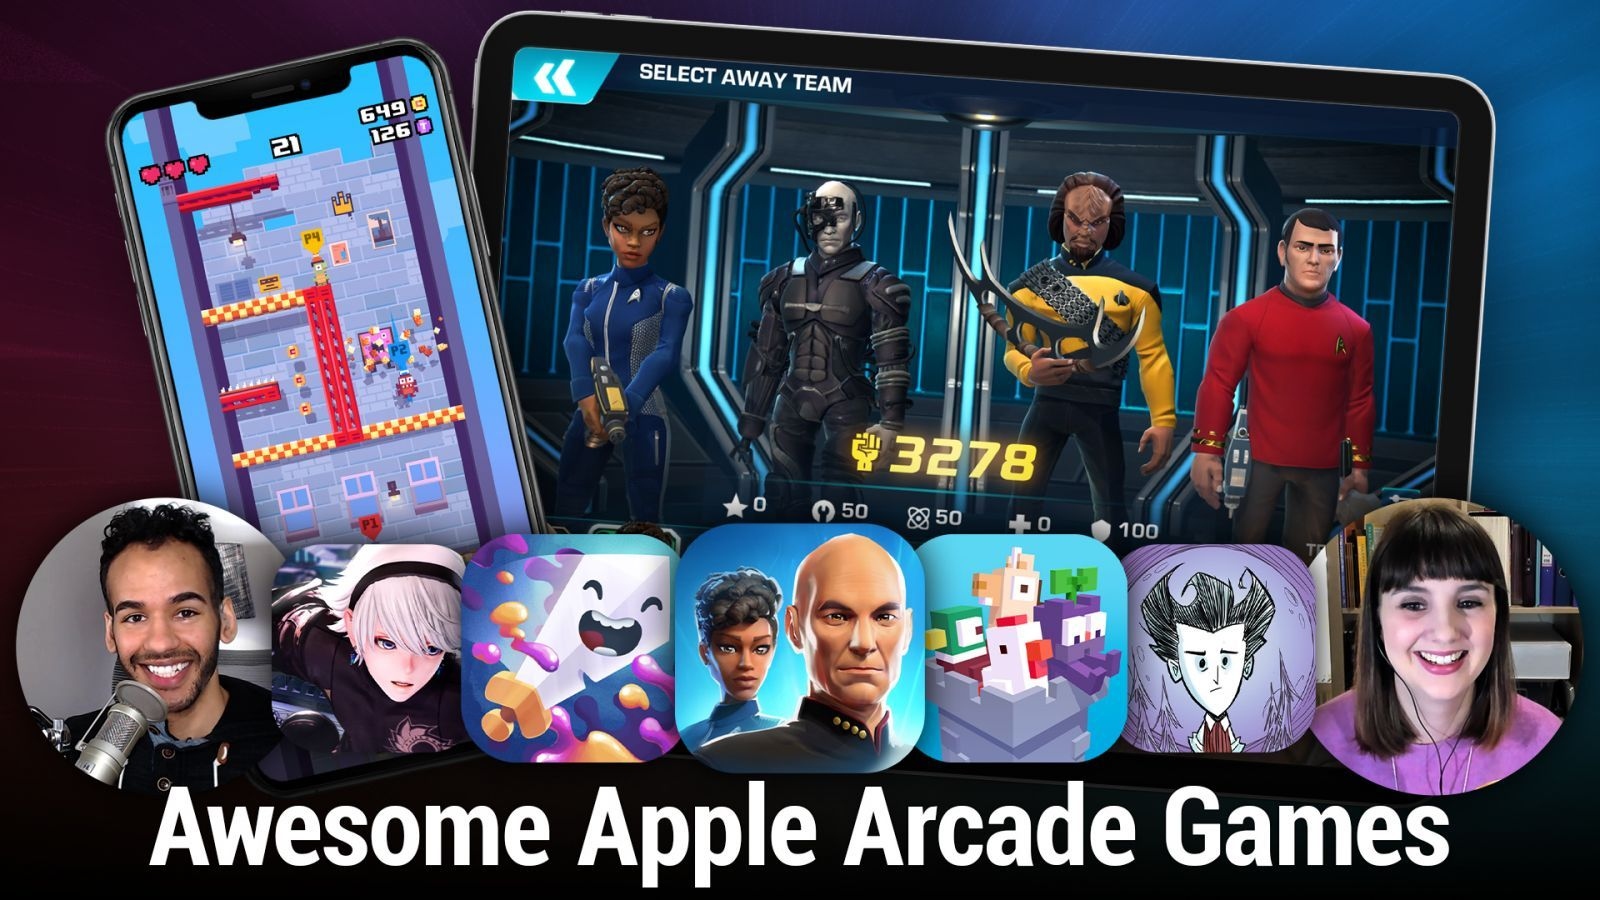 Awesome Apple Arcade Games - Crossy Road Castle, Star Trek: Legends, FANTASIAN, and more